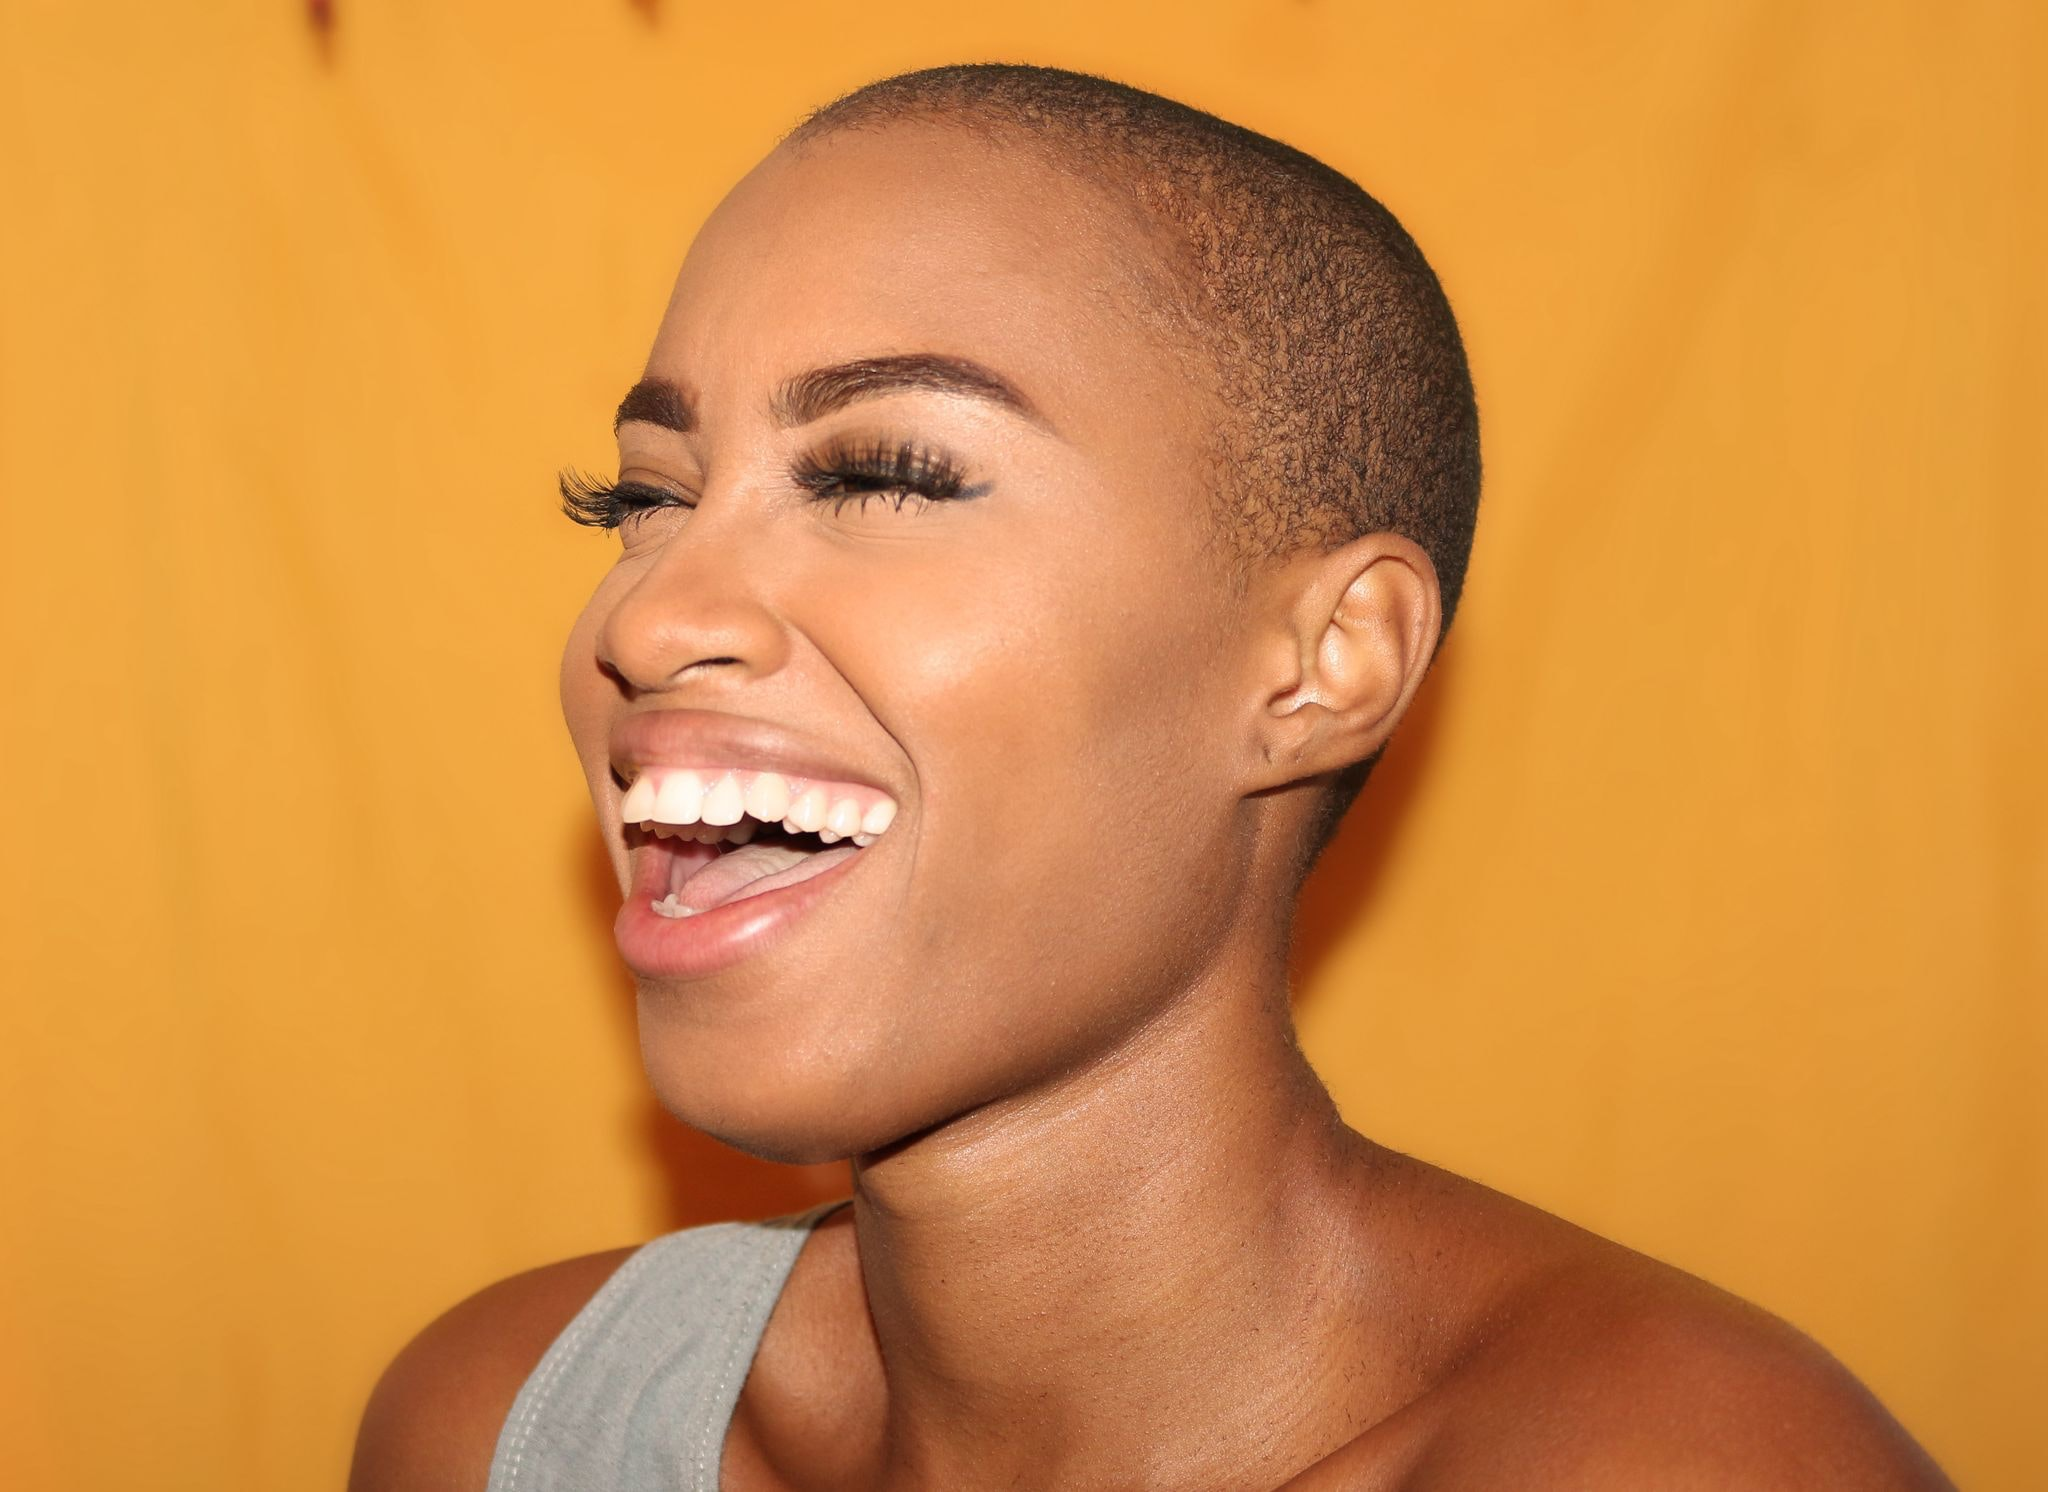 A woman with a shaved head smiles broadly against a yellow background